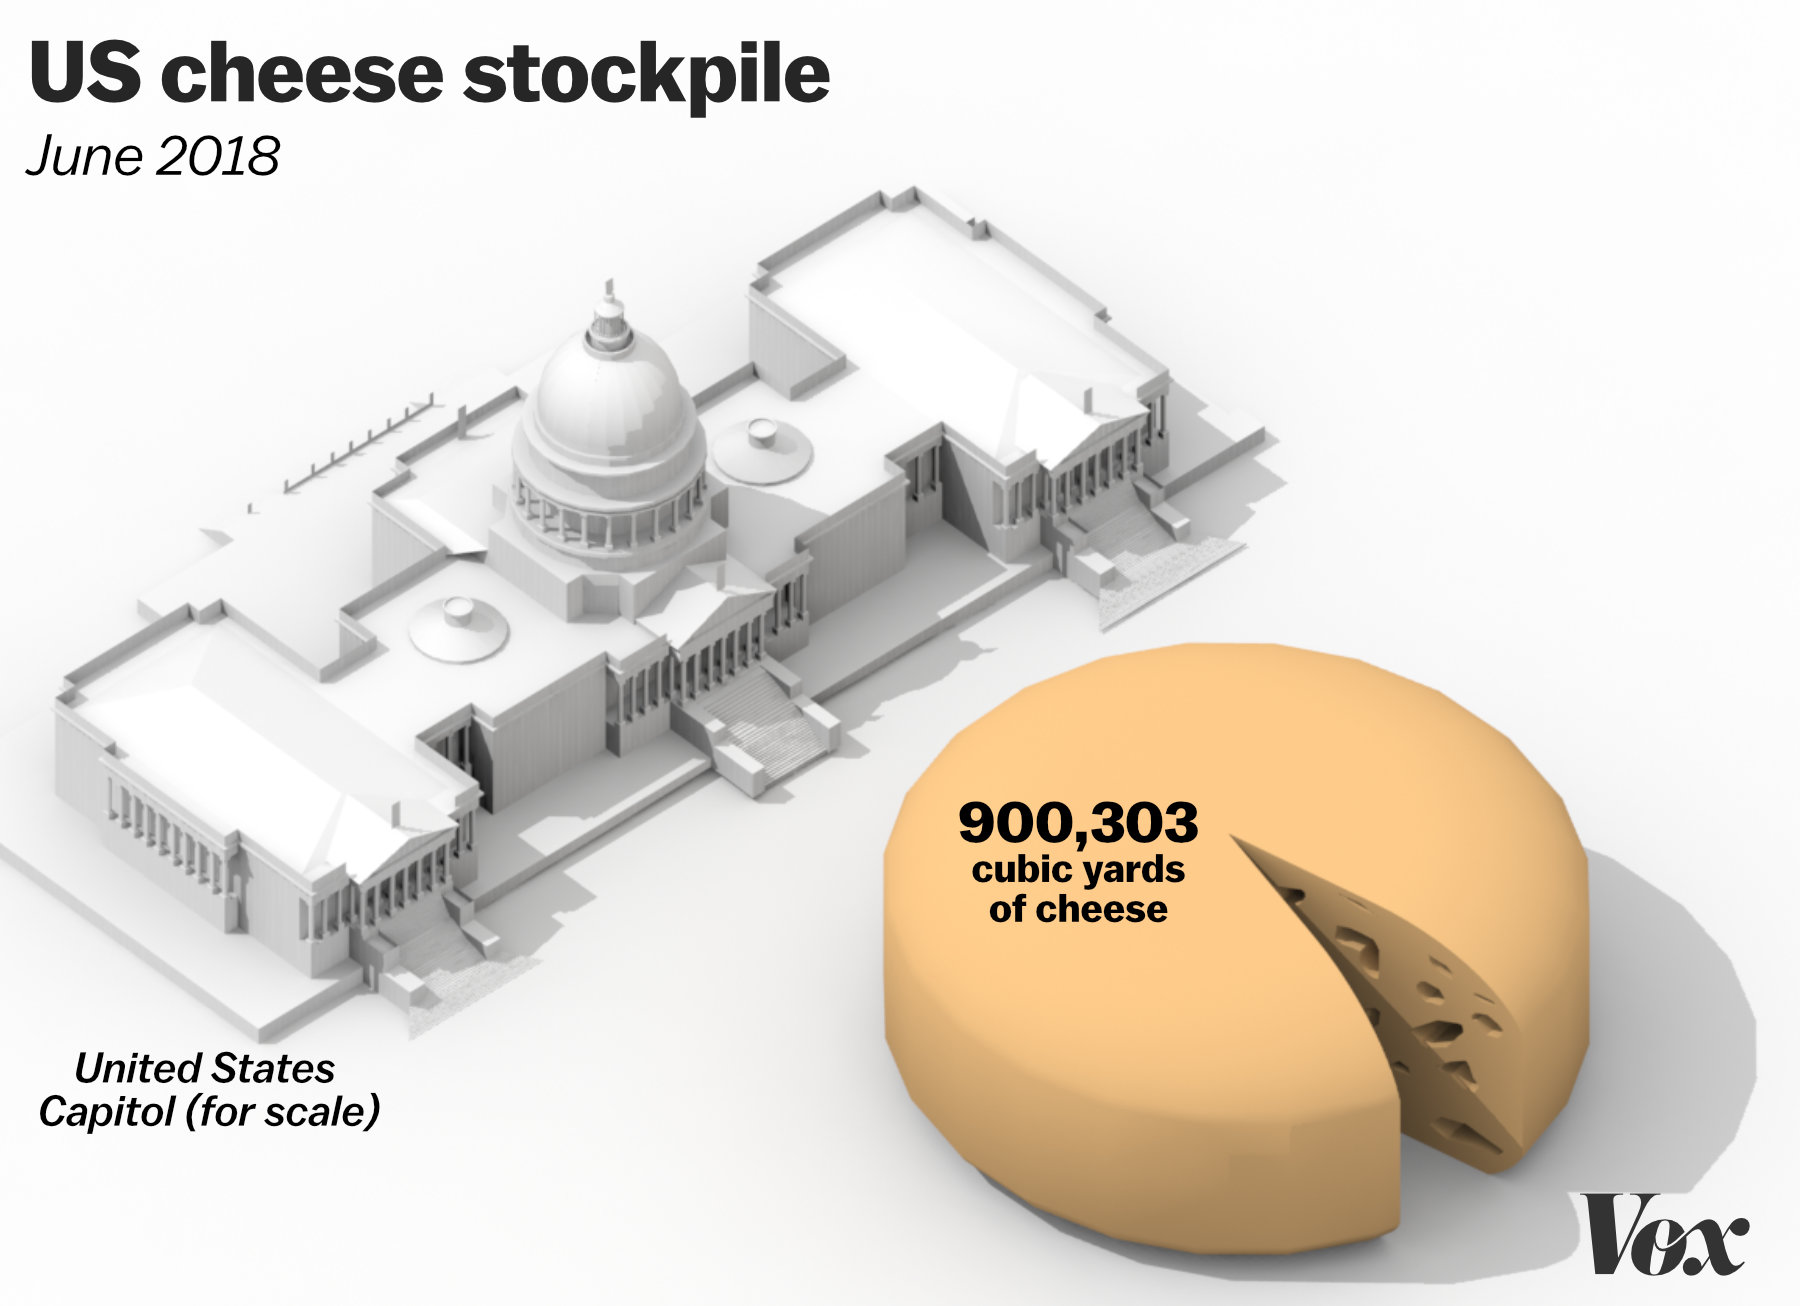 The US has a 1 39 billion-pound surplus of cheese  Let's try to